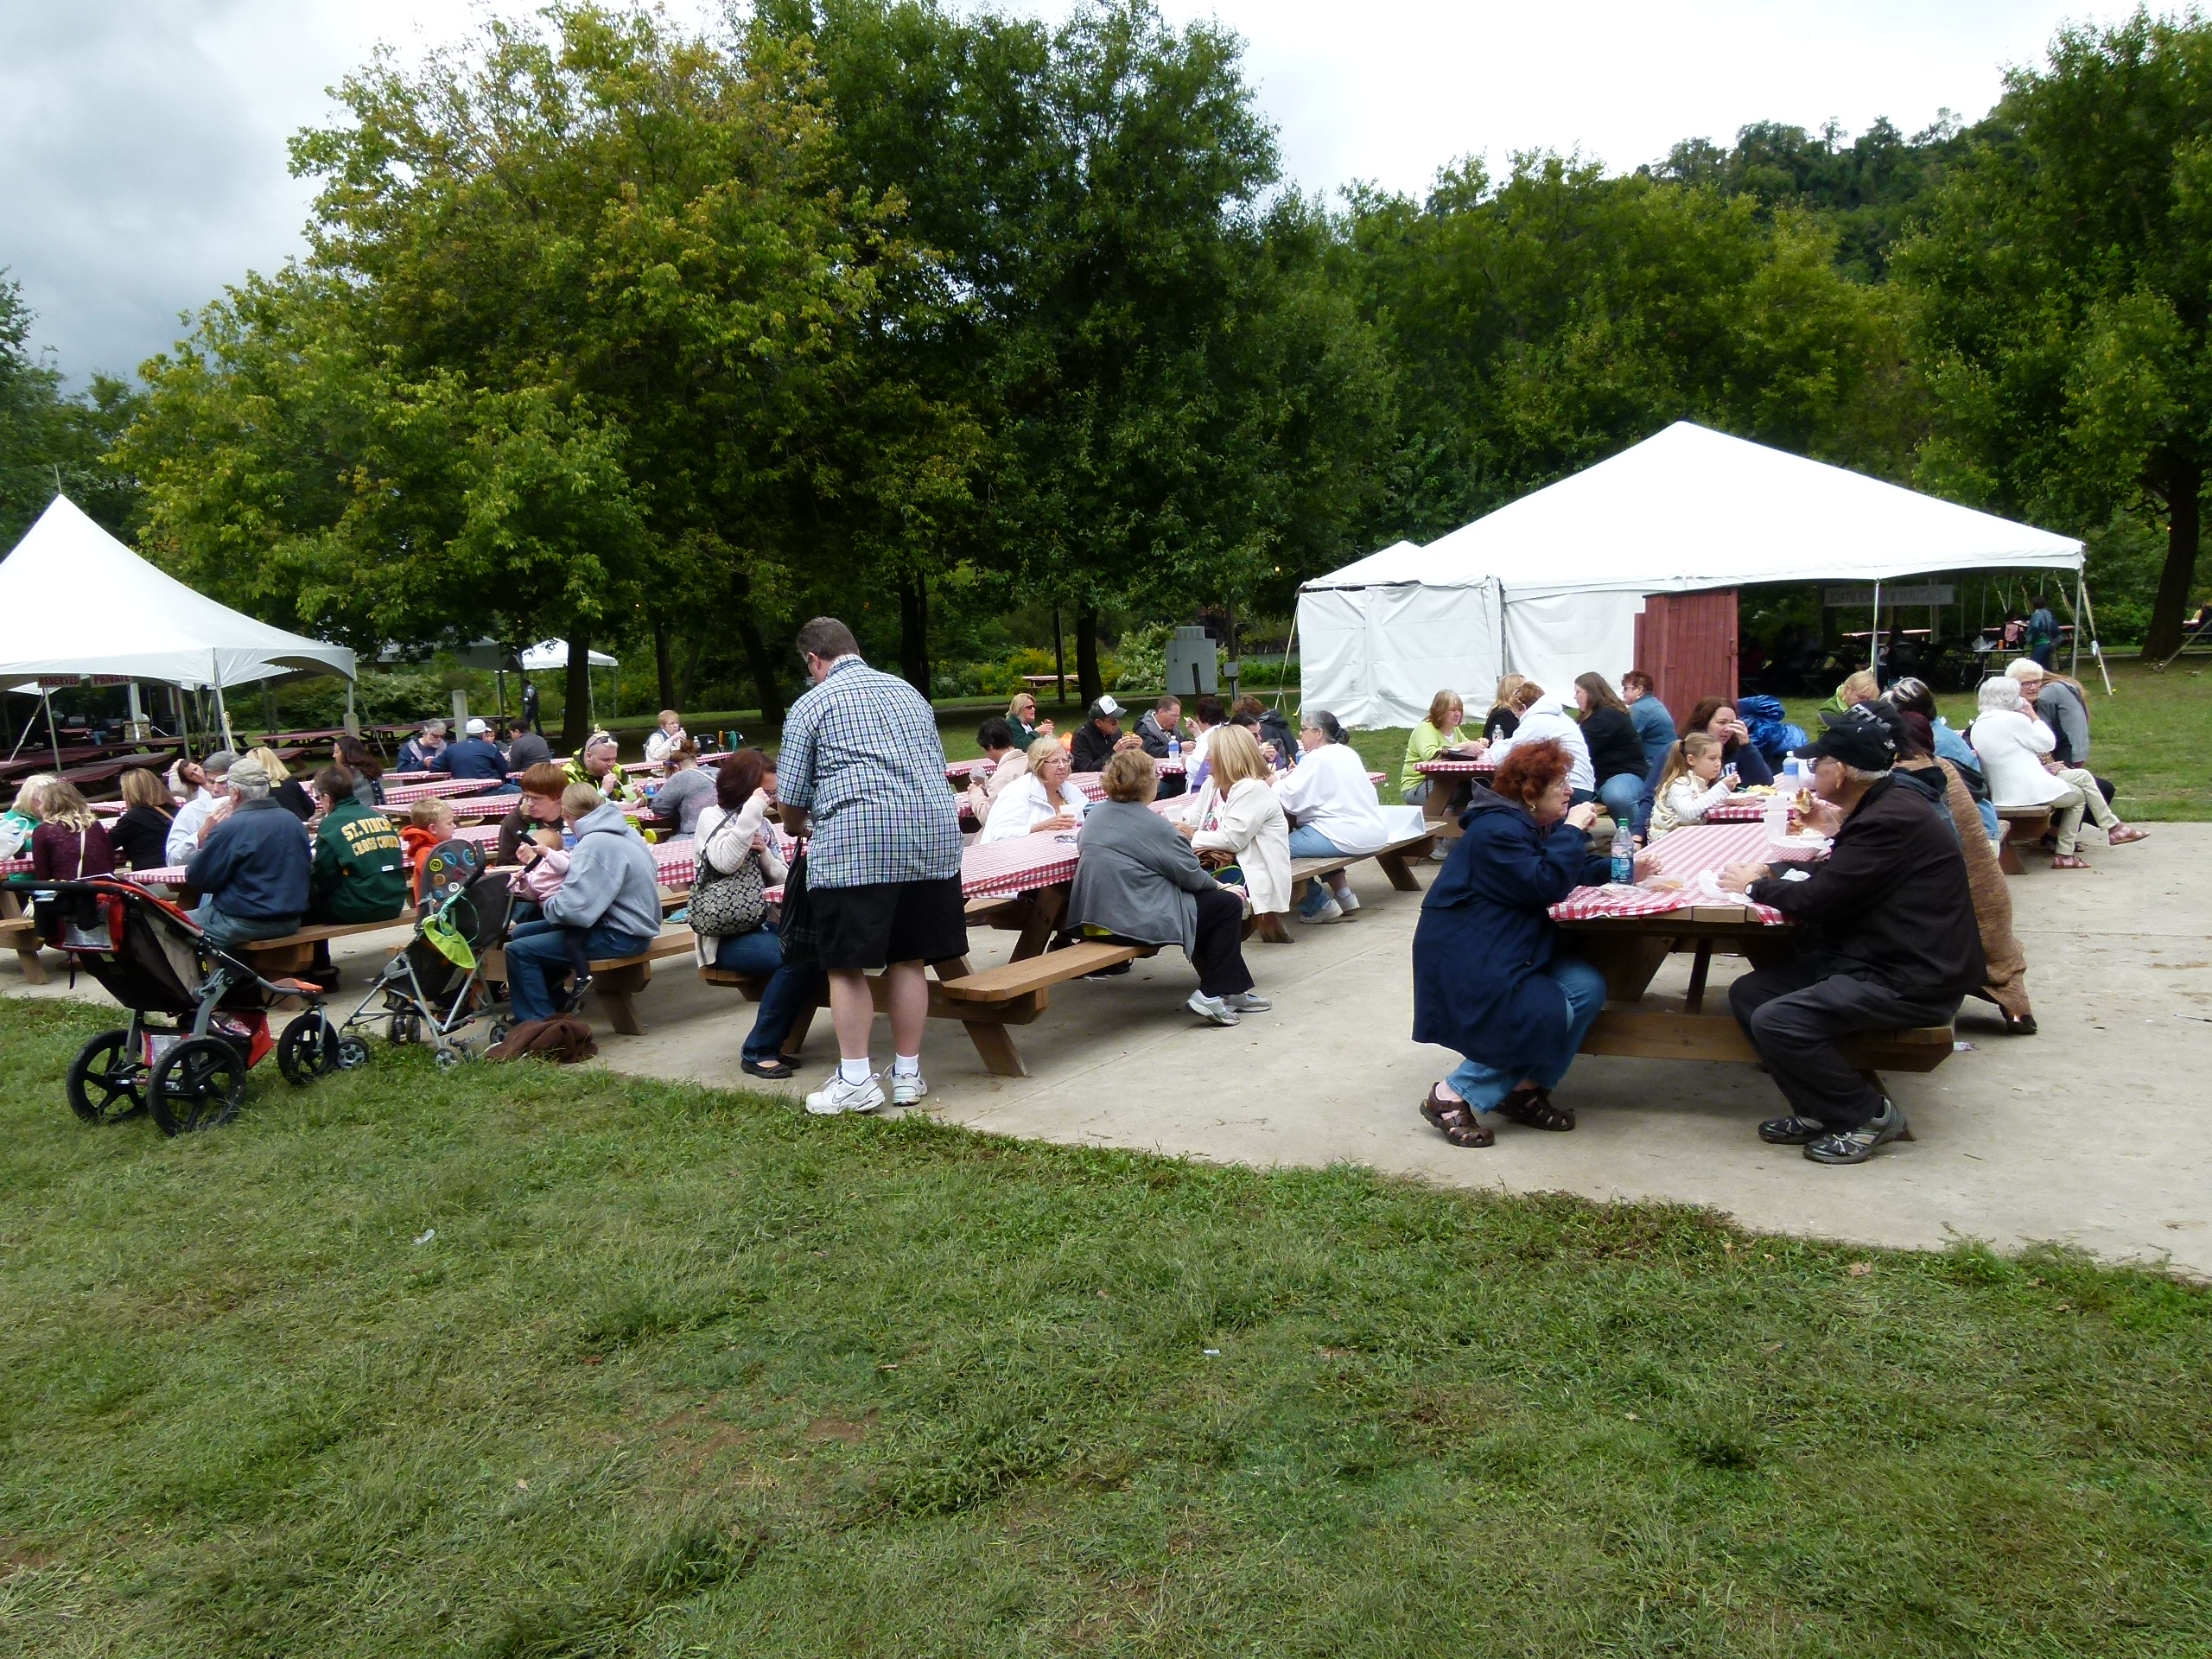 Friends and families relax and eat in the picnic area.